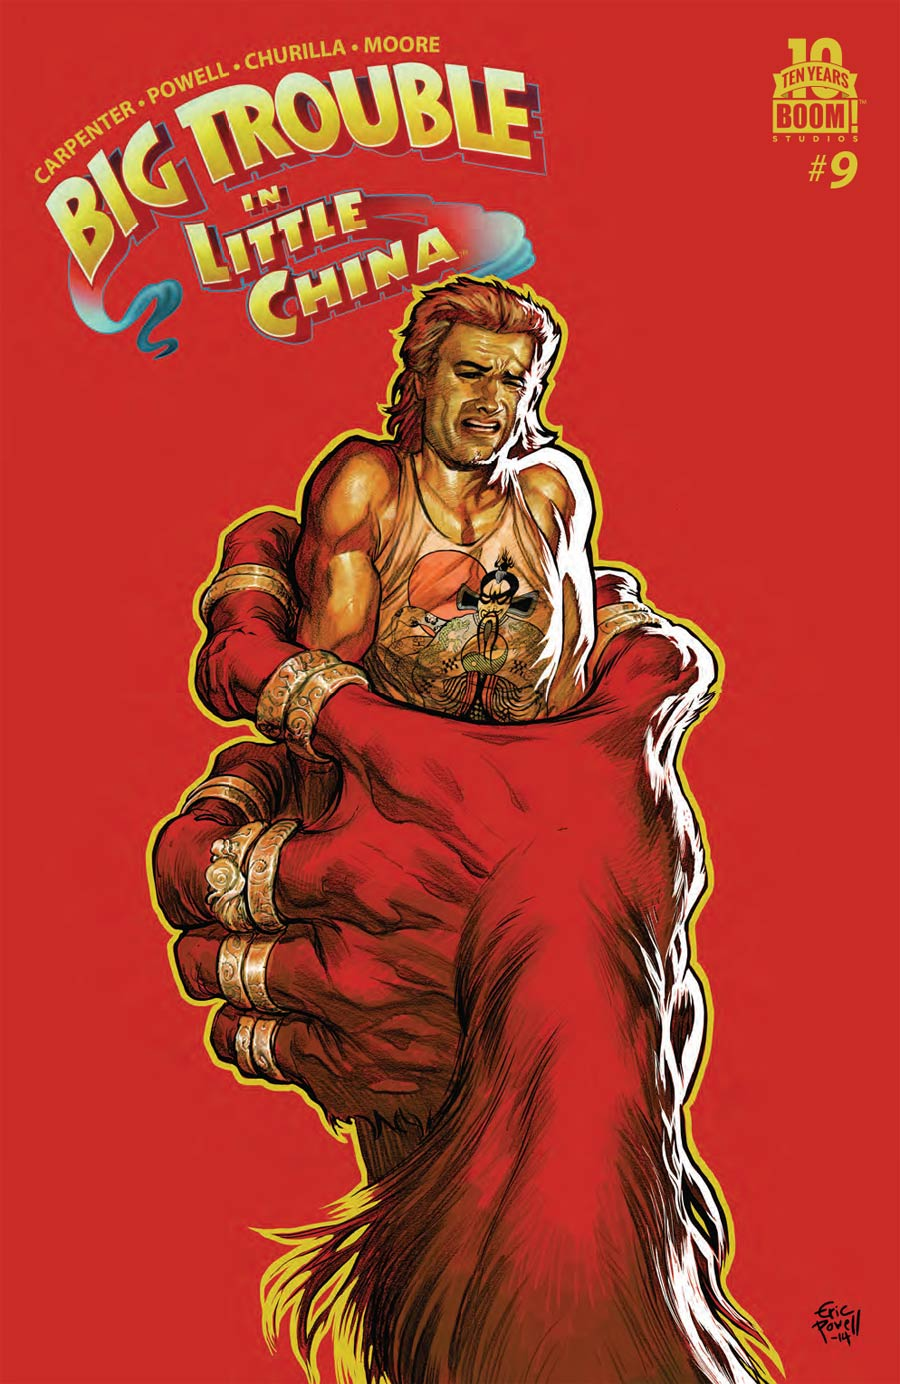 Big Trouble In Little China #9 Cover A Regular Eric Powell Cover